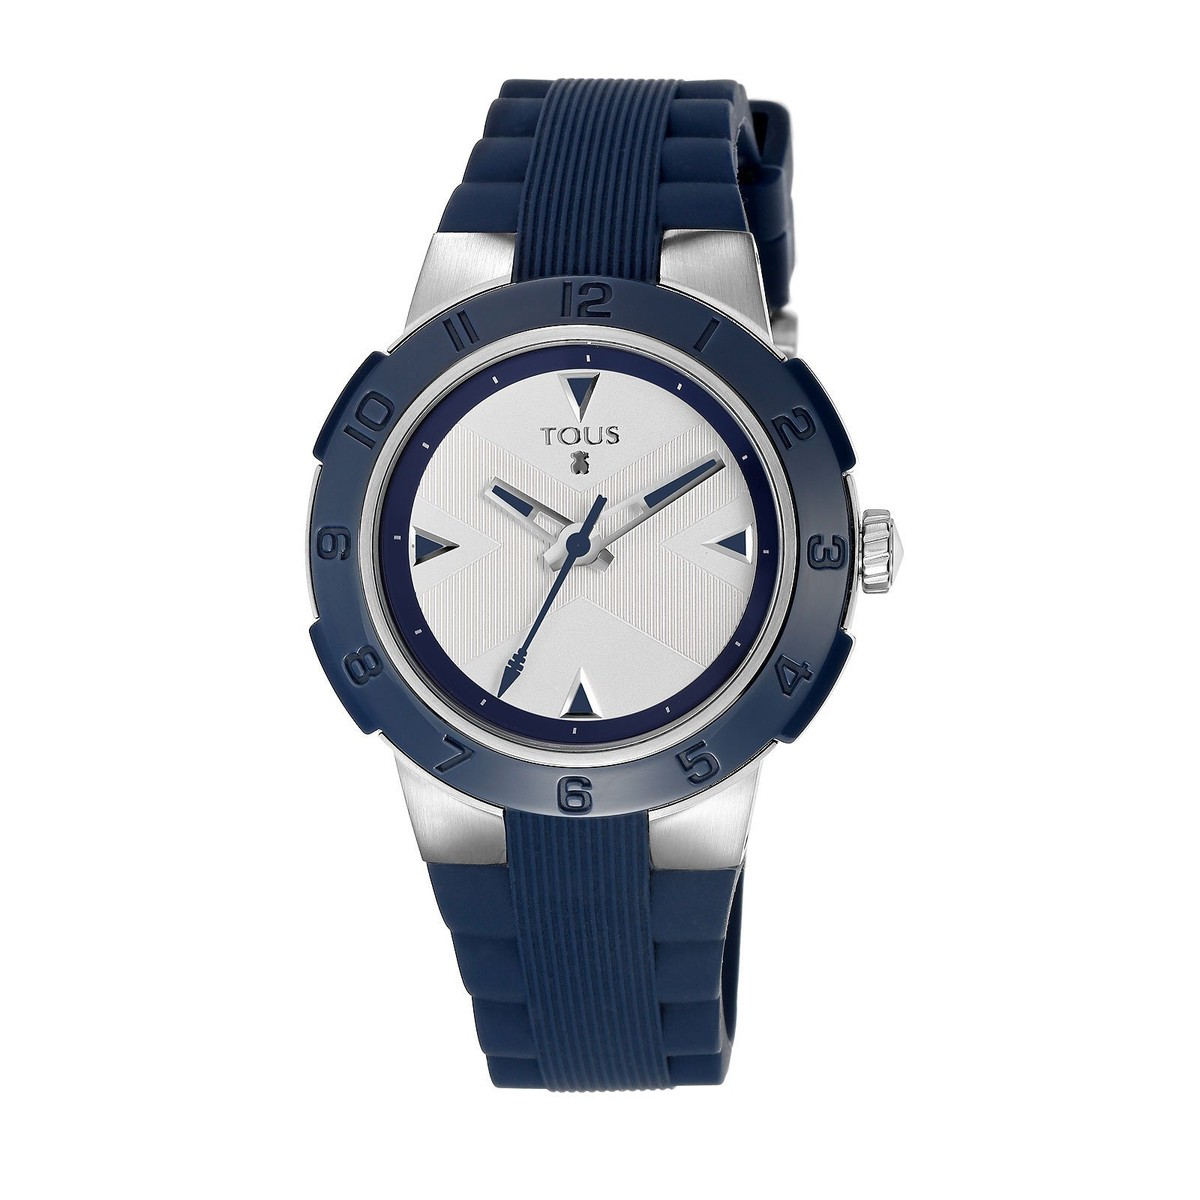 Steel Xtous Colors Watch with navy blue Silicone strap